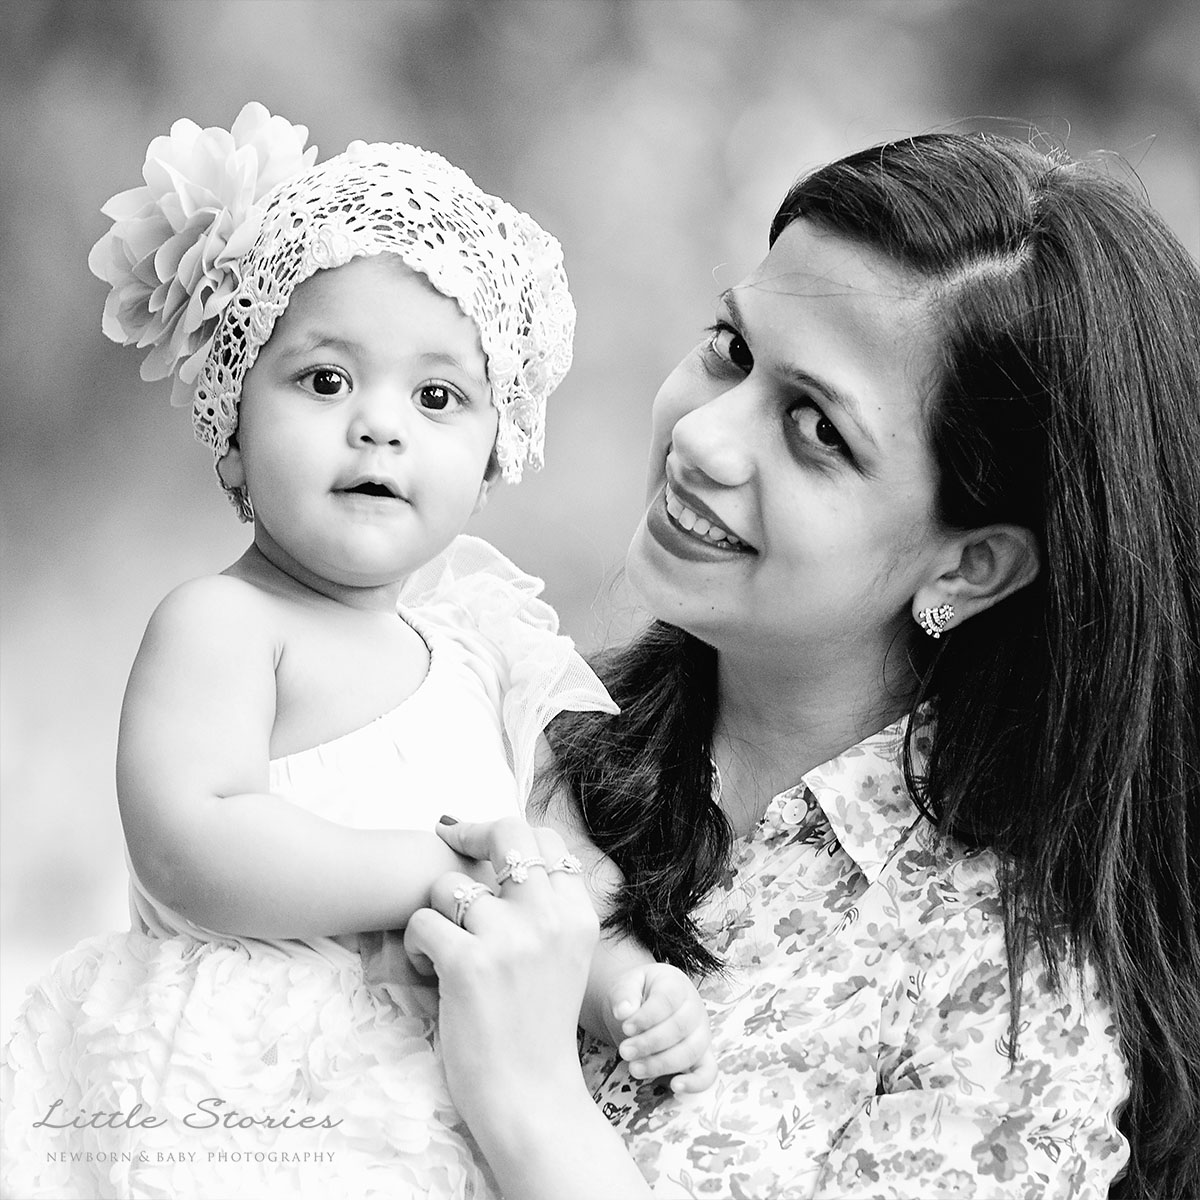 little-stories-kids-photography-happy-stories-chandni